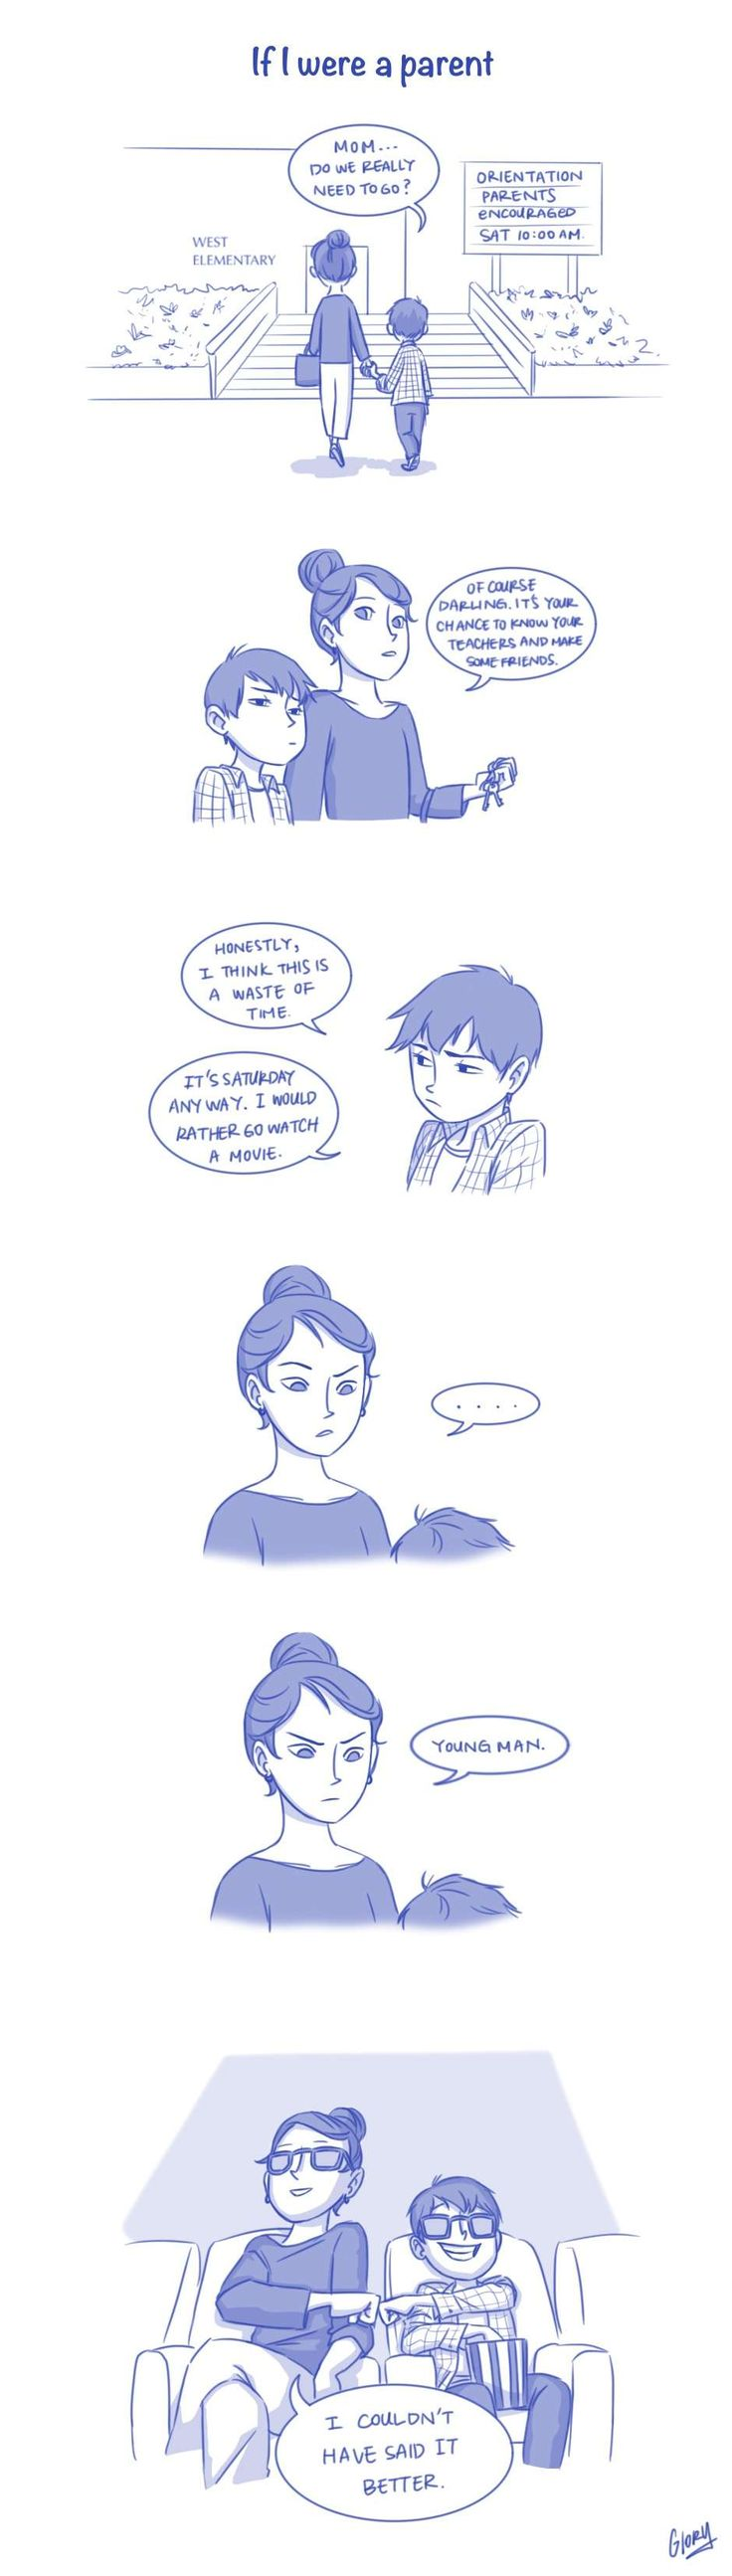 All This Doubt :: If I Were a Parent | Tapastic Comics - image 1